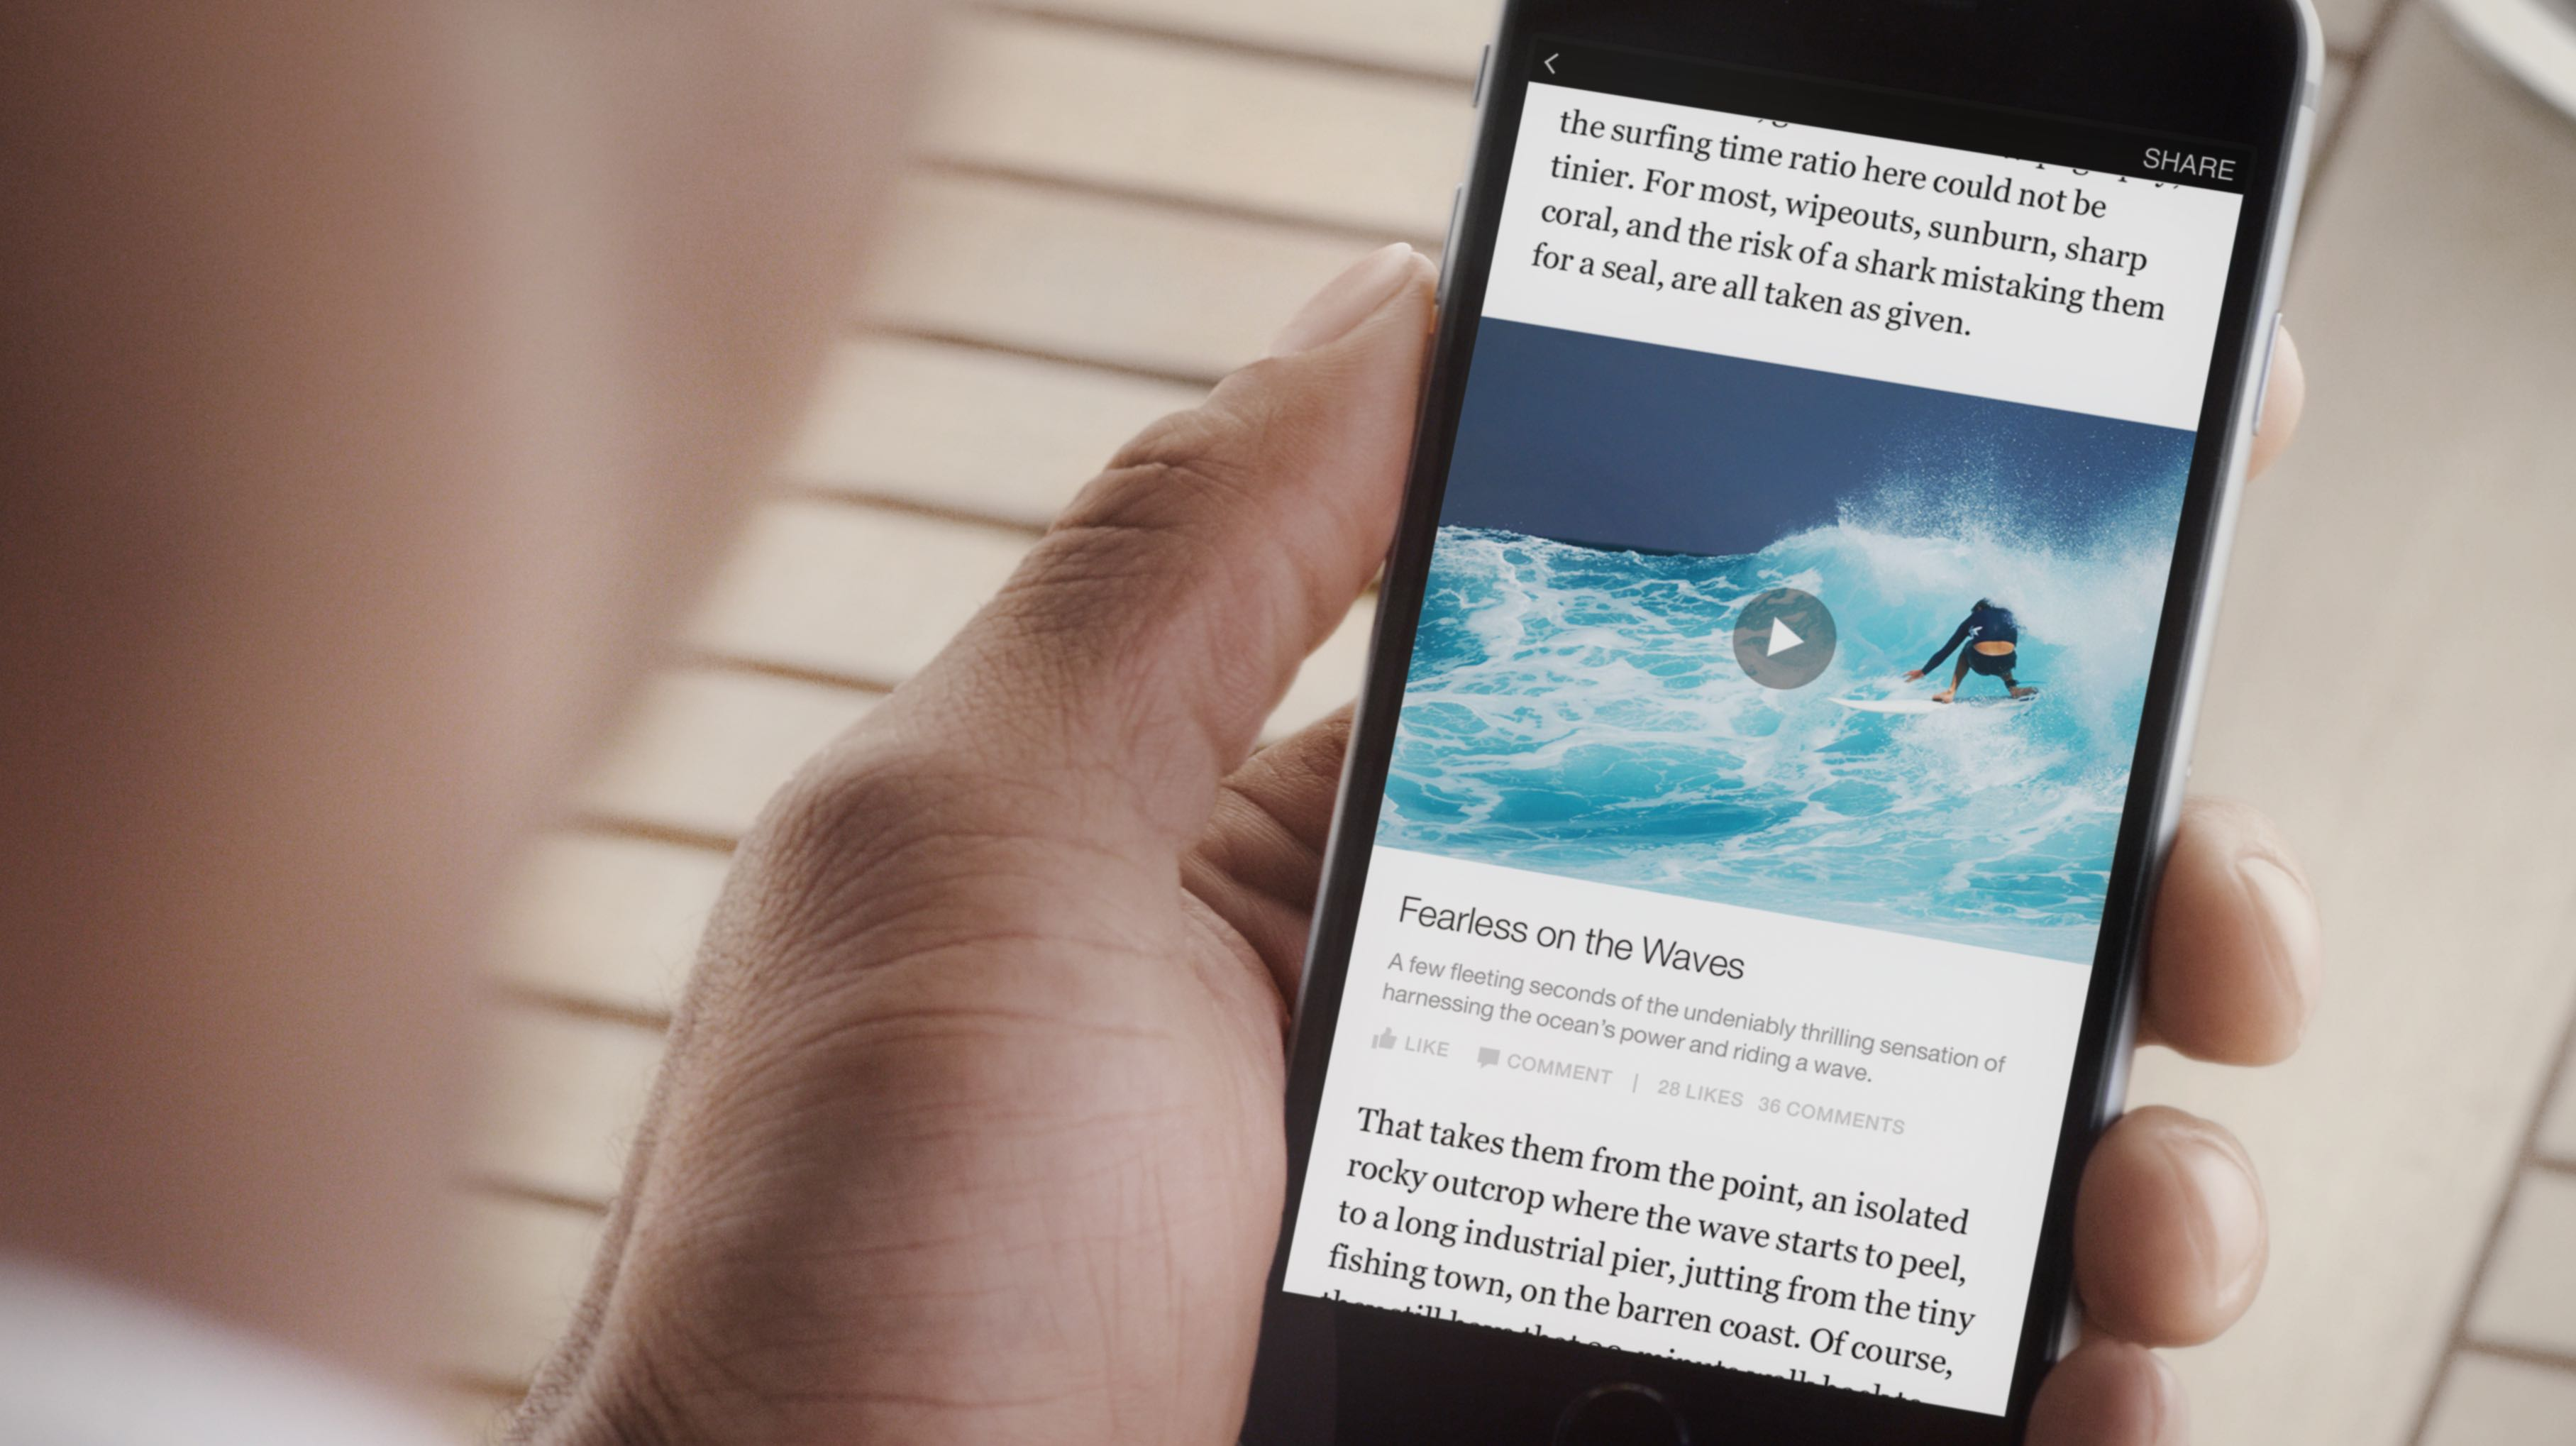 How to stop videos from autoplaying in mobile Facebook app